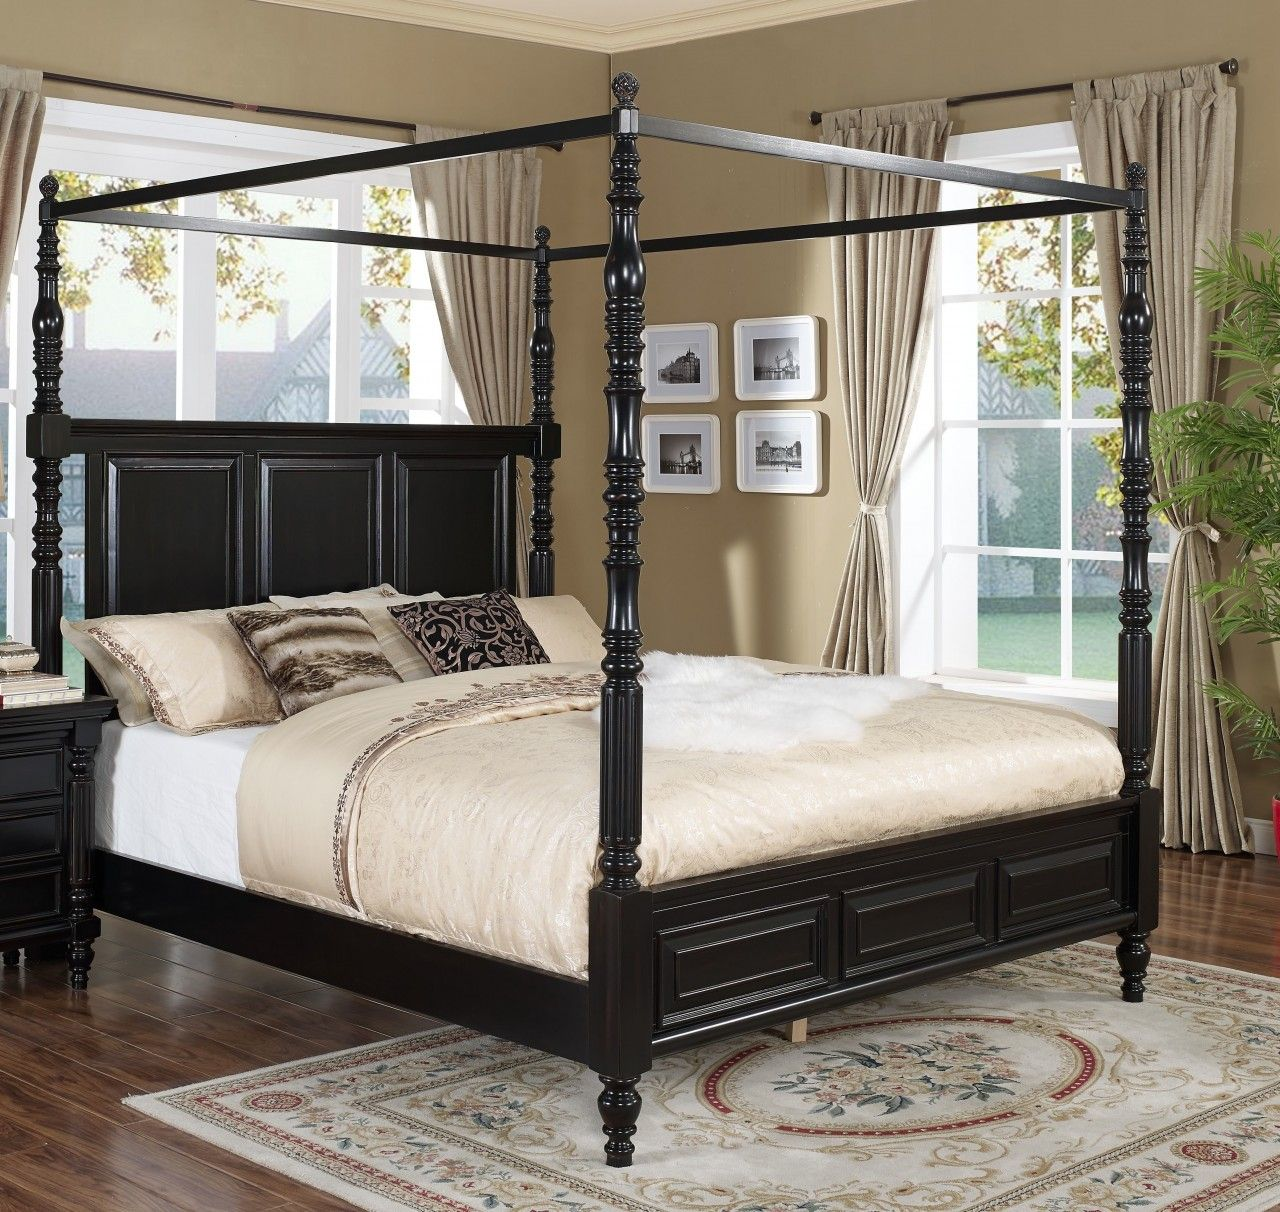 Black canopy bed curtains - New Classic Martinique Queen Canopy Bed With Drapes In Rubbed Black 00 222 311q